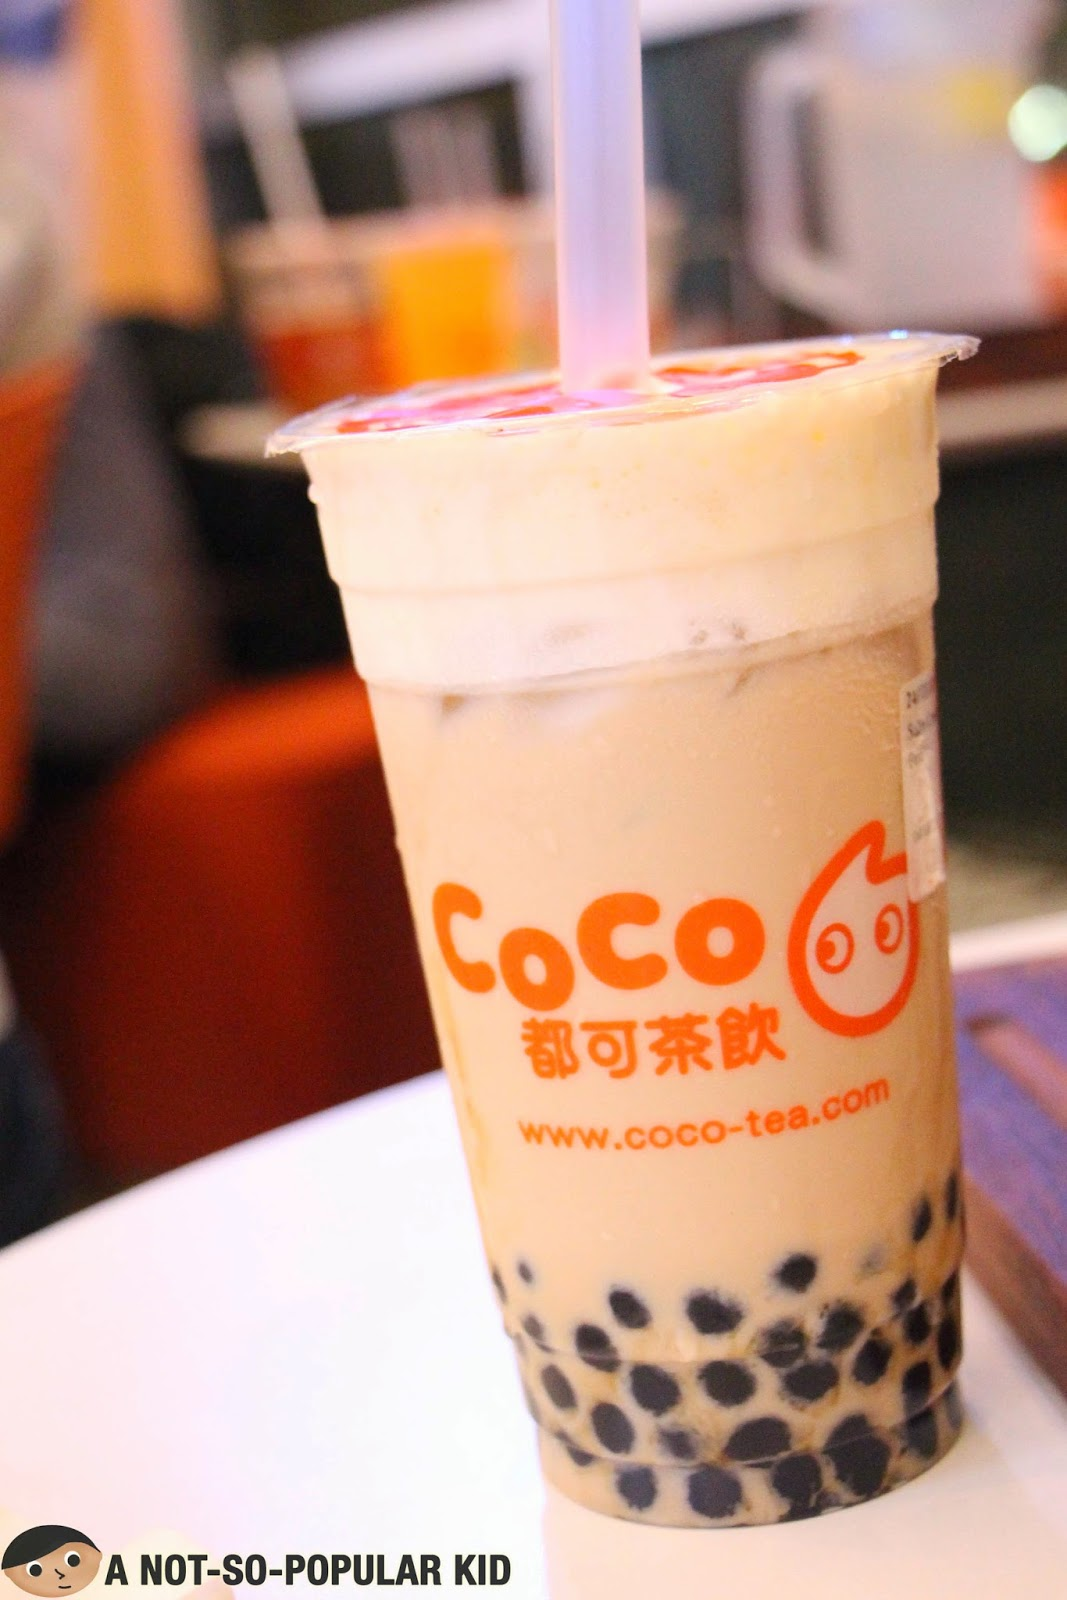 One of the 3 bestsellers - CoCo's Salty Cream Milk Tea